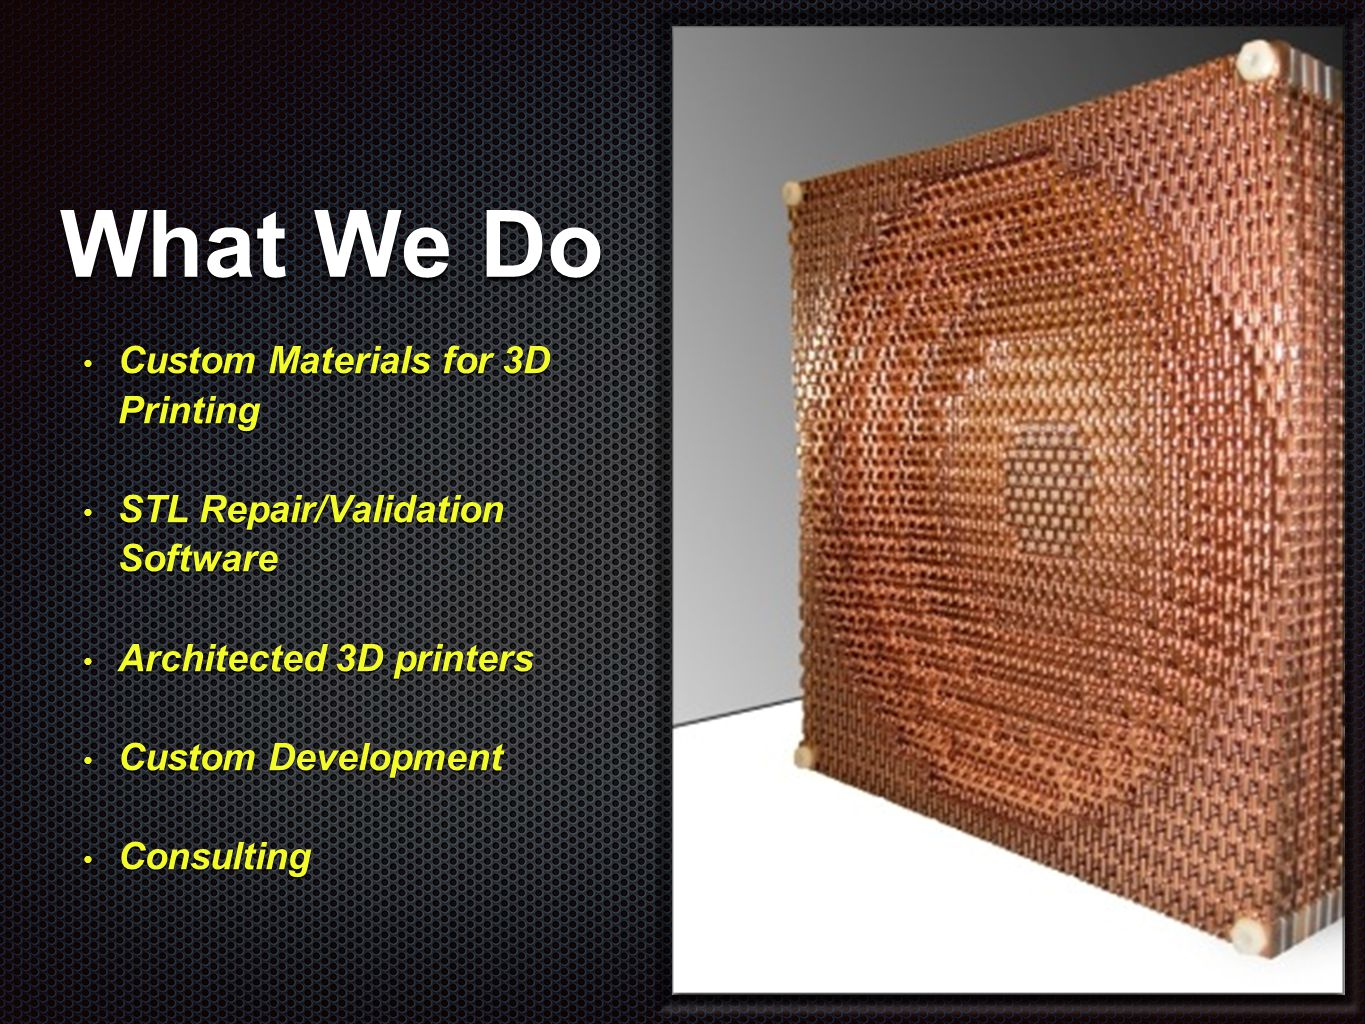 Commercial 3D Printing State of the Industry